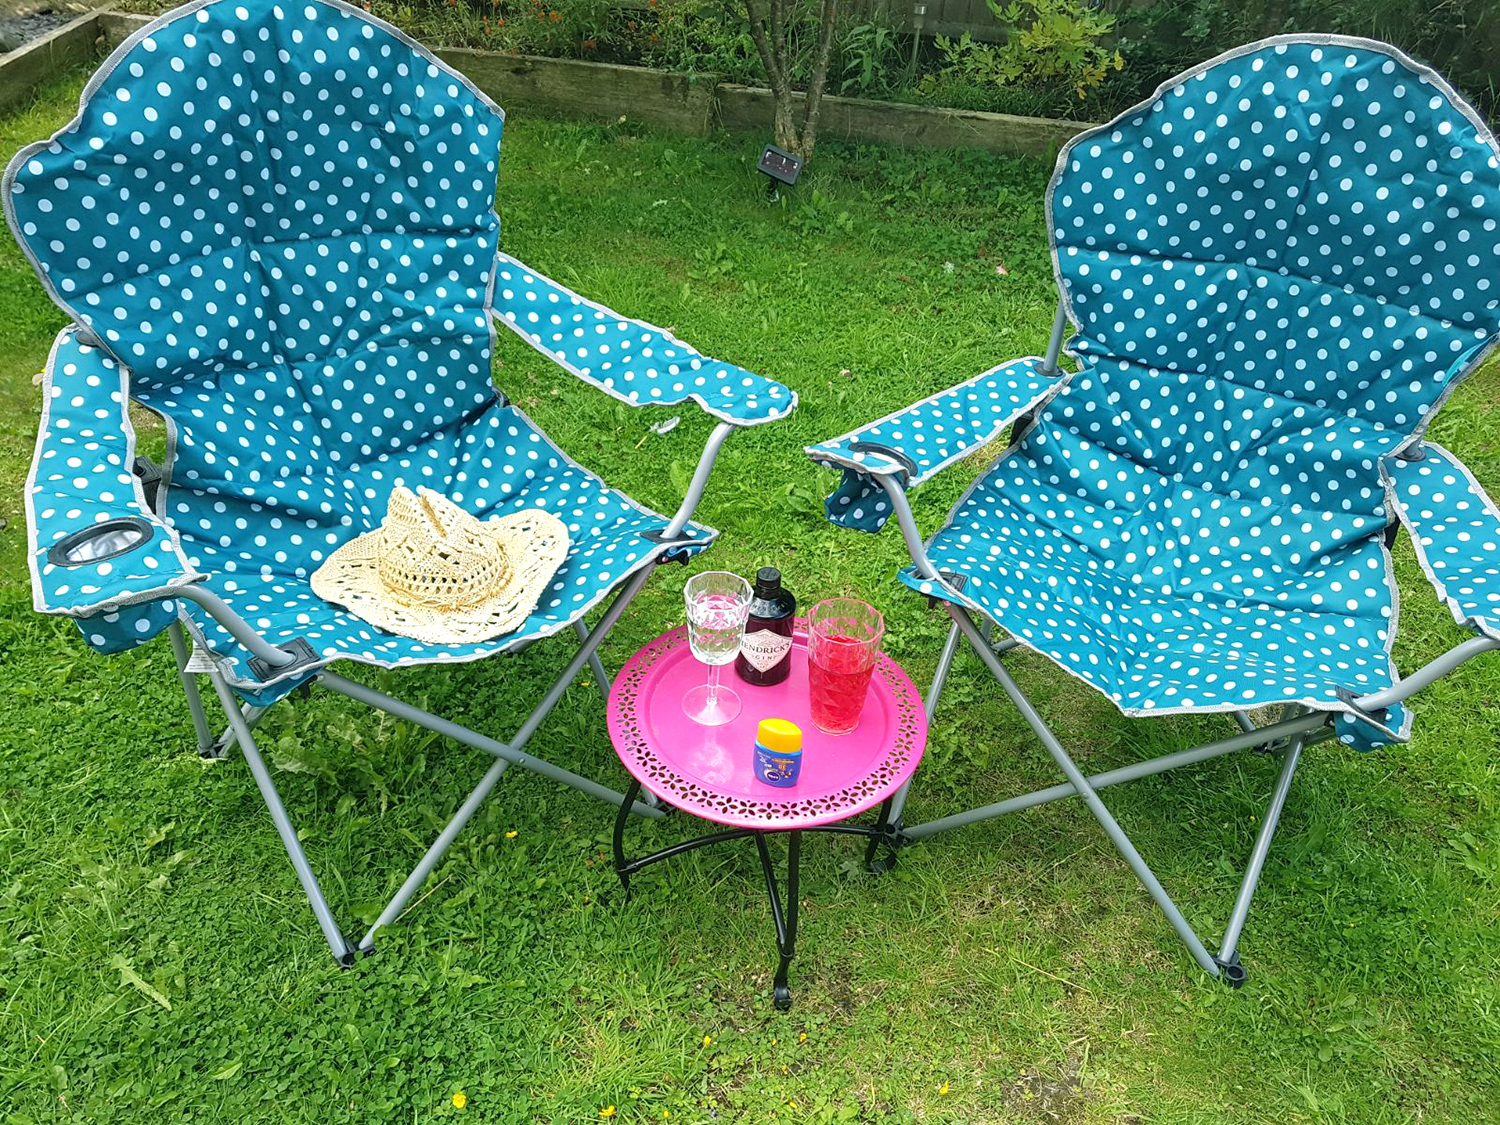 Deluxe polka dot camping chair